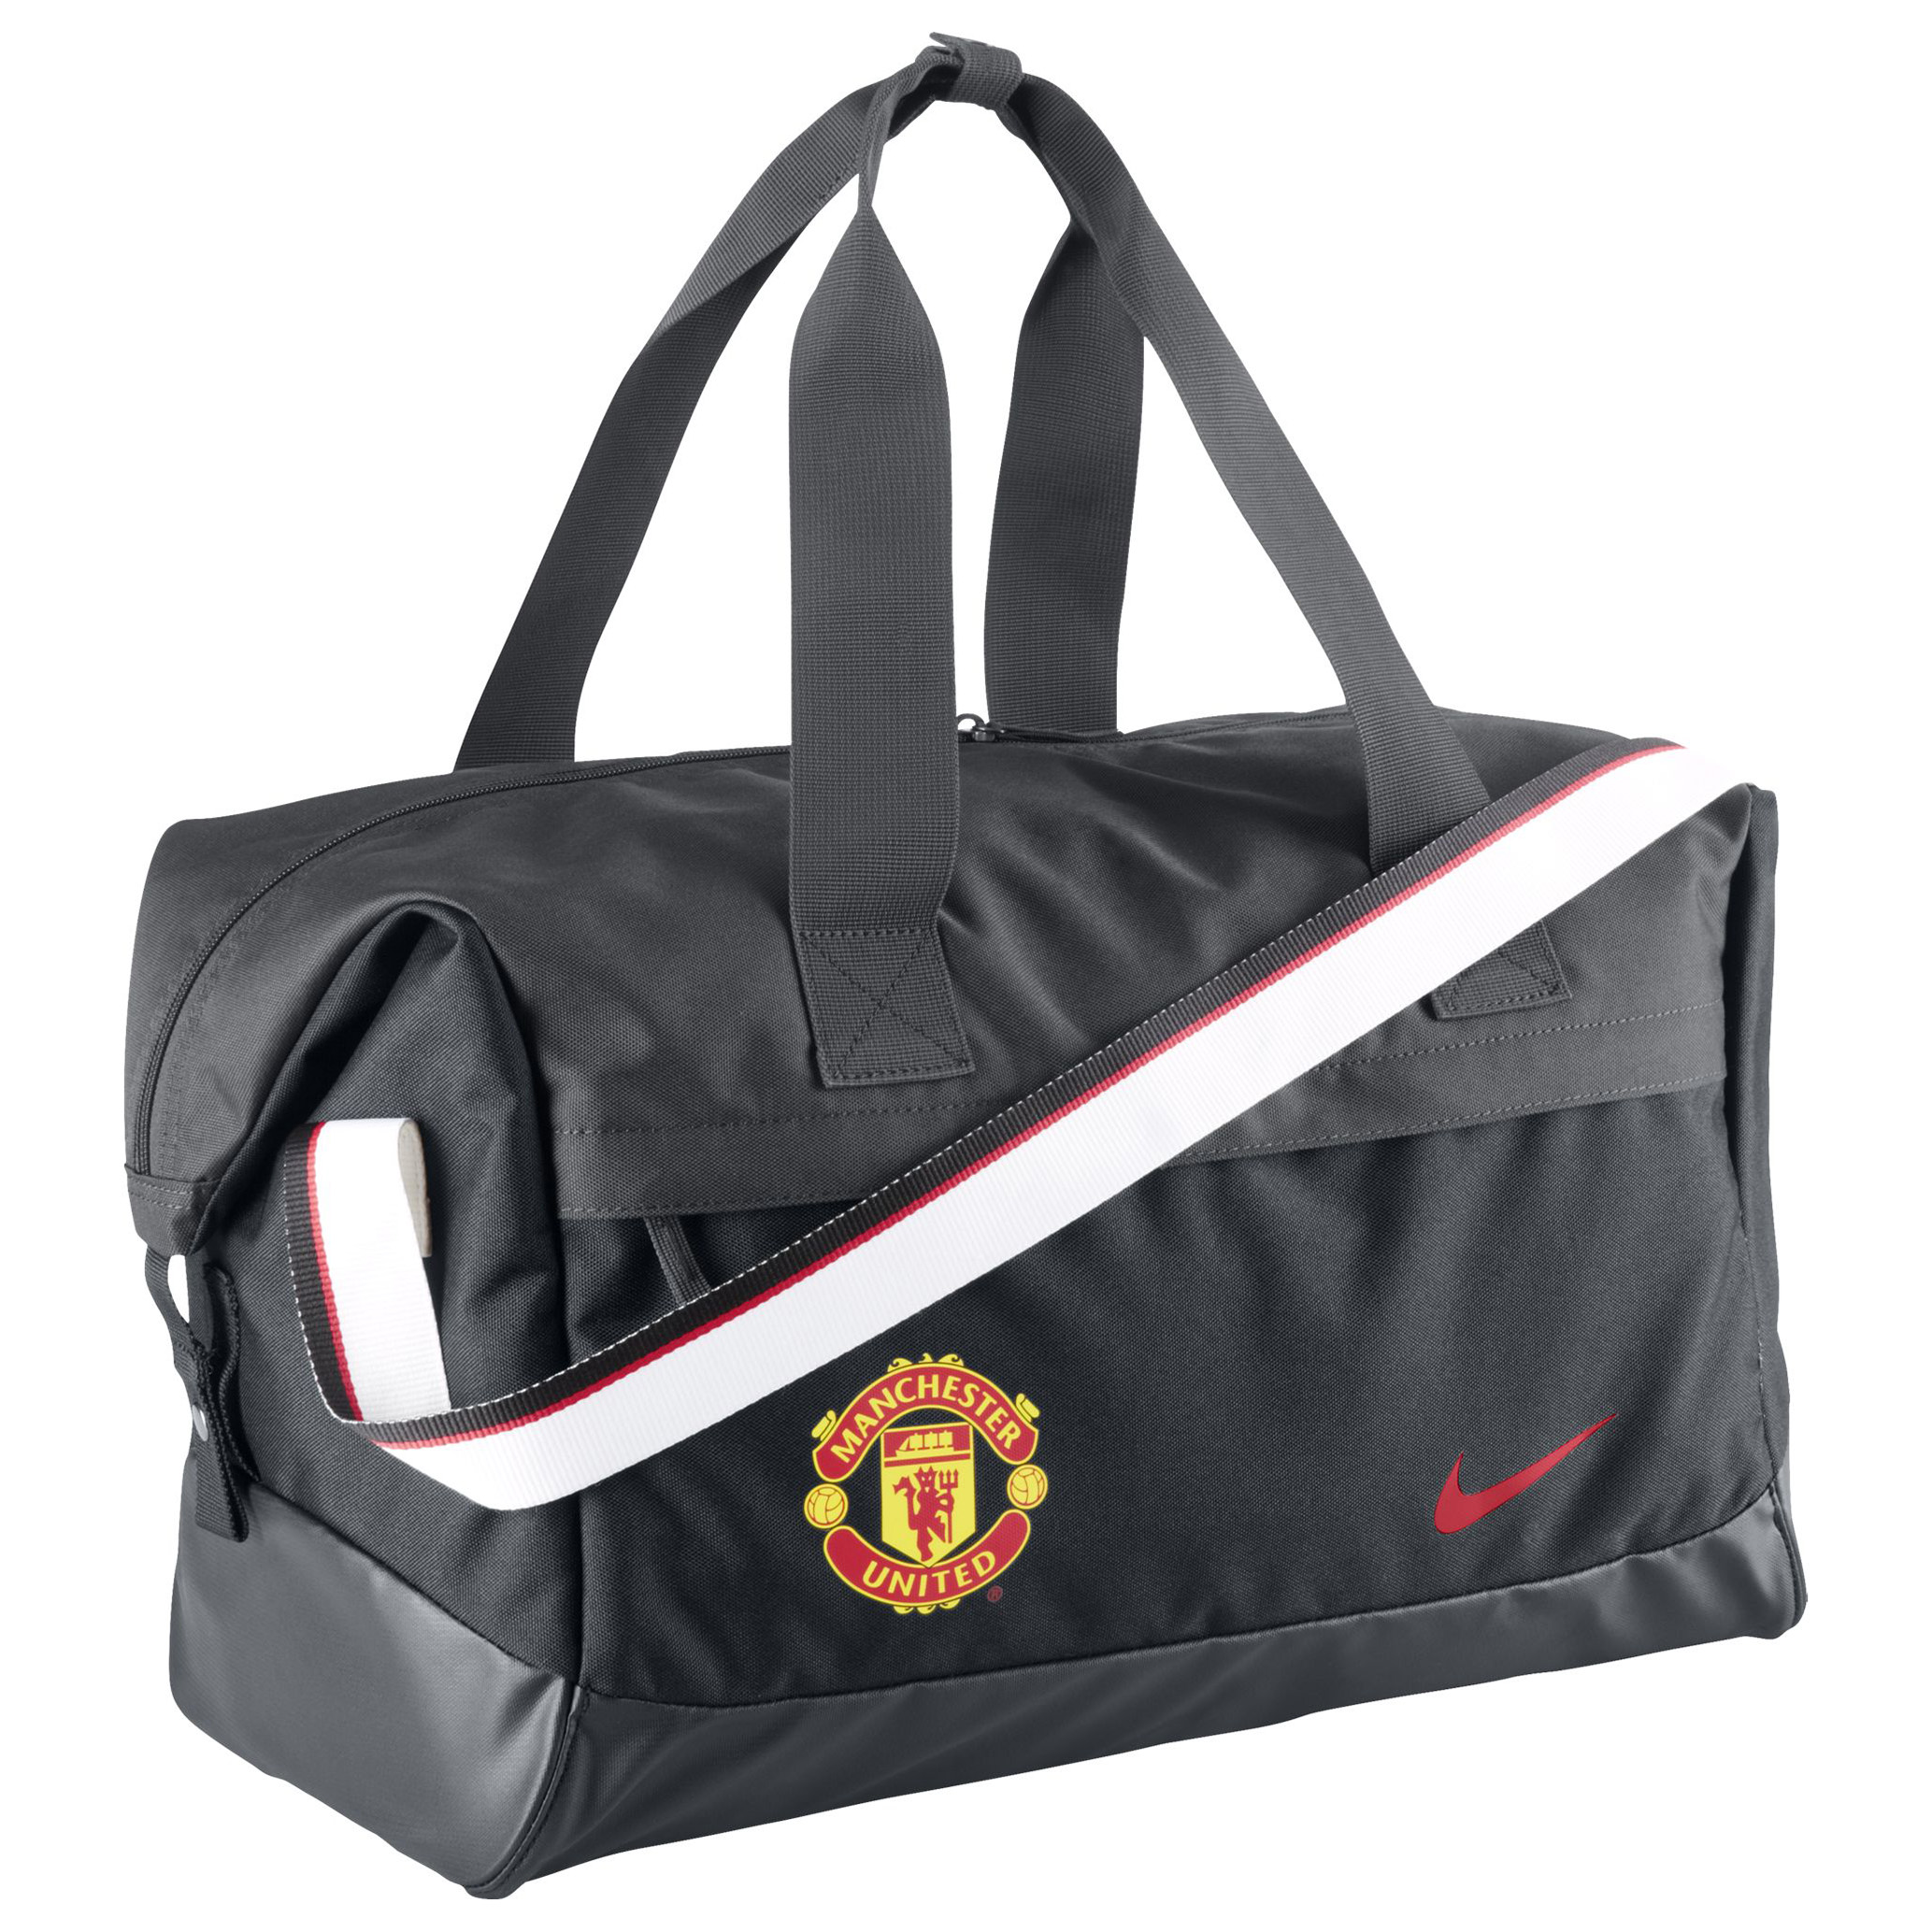 Manchester United Allegiance Shield Compact Duffle Bag 14/15-Black